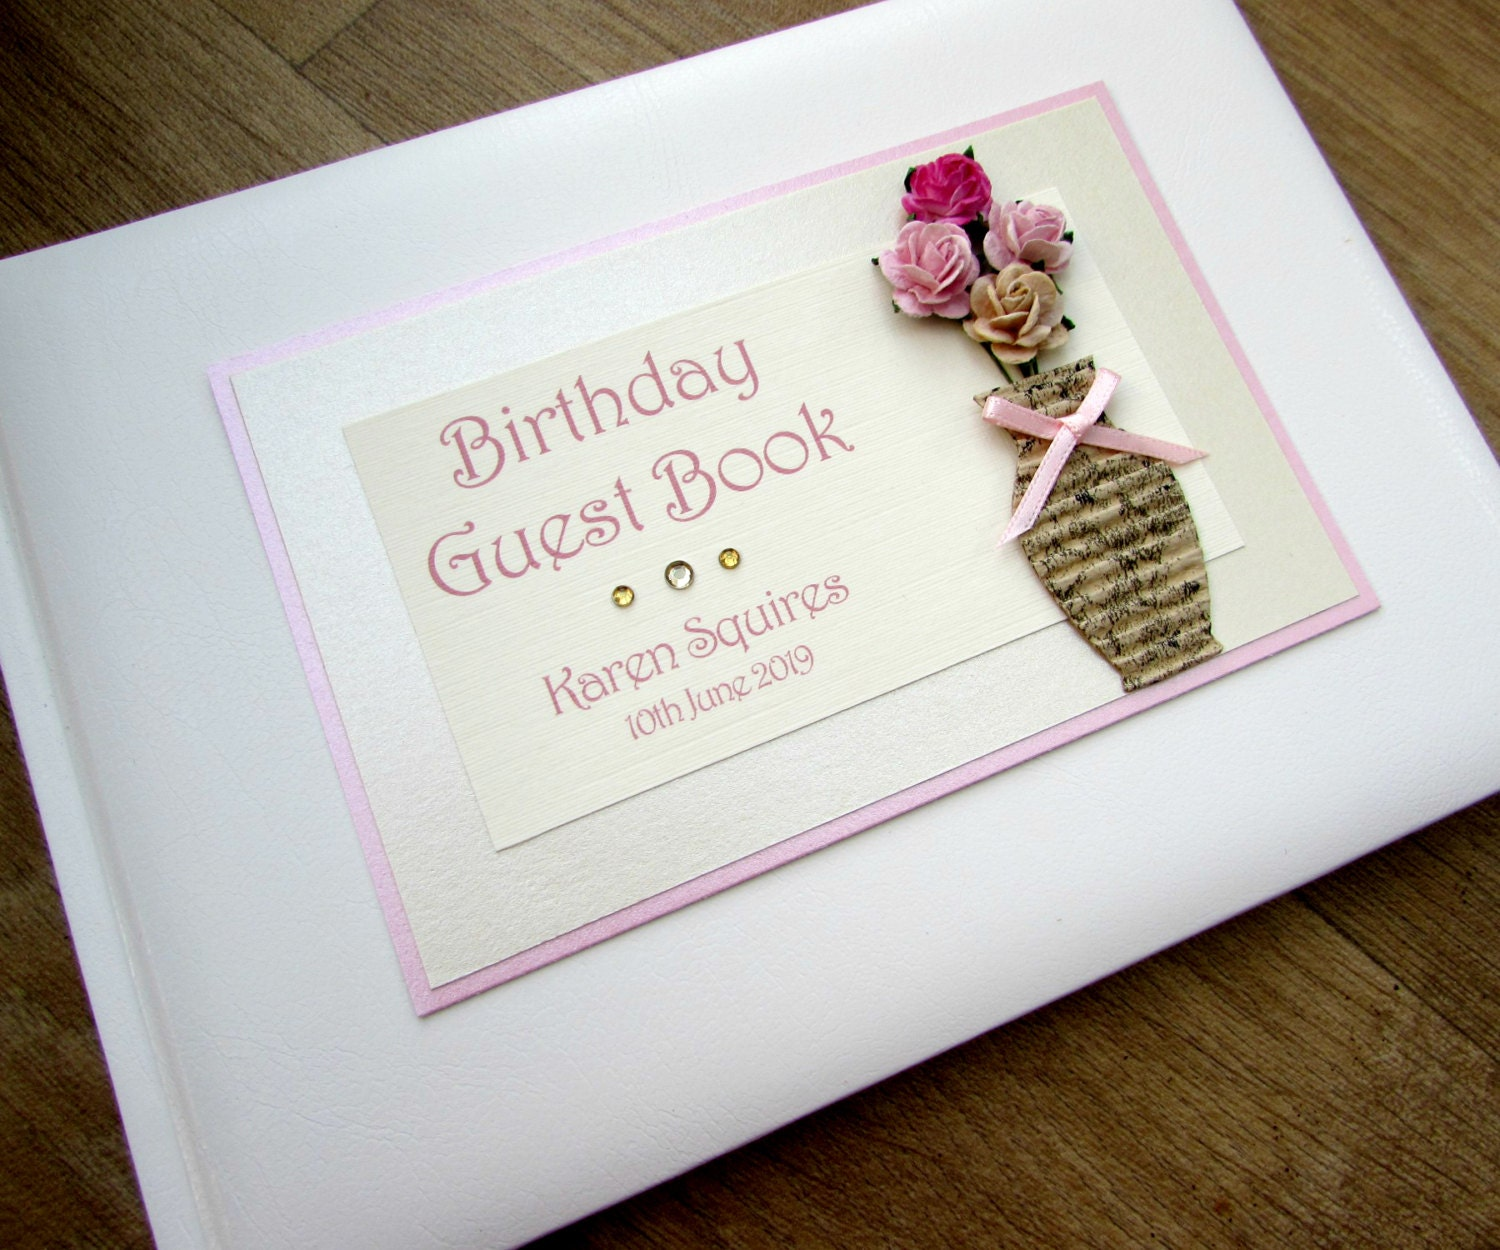 Photo Book Guest Book: Birthday Guest Book Personalised 70th 80th 90th 100th Birthday